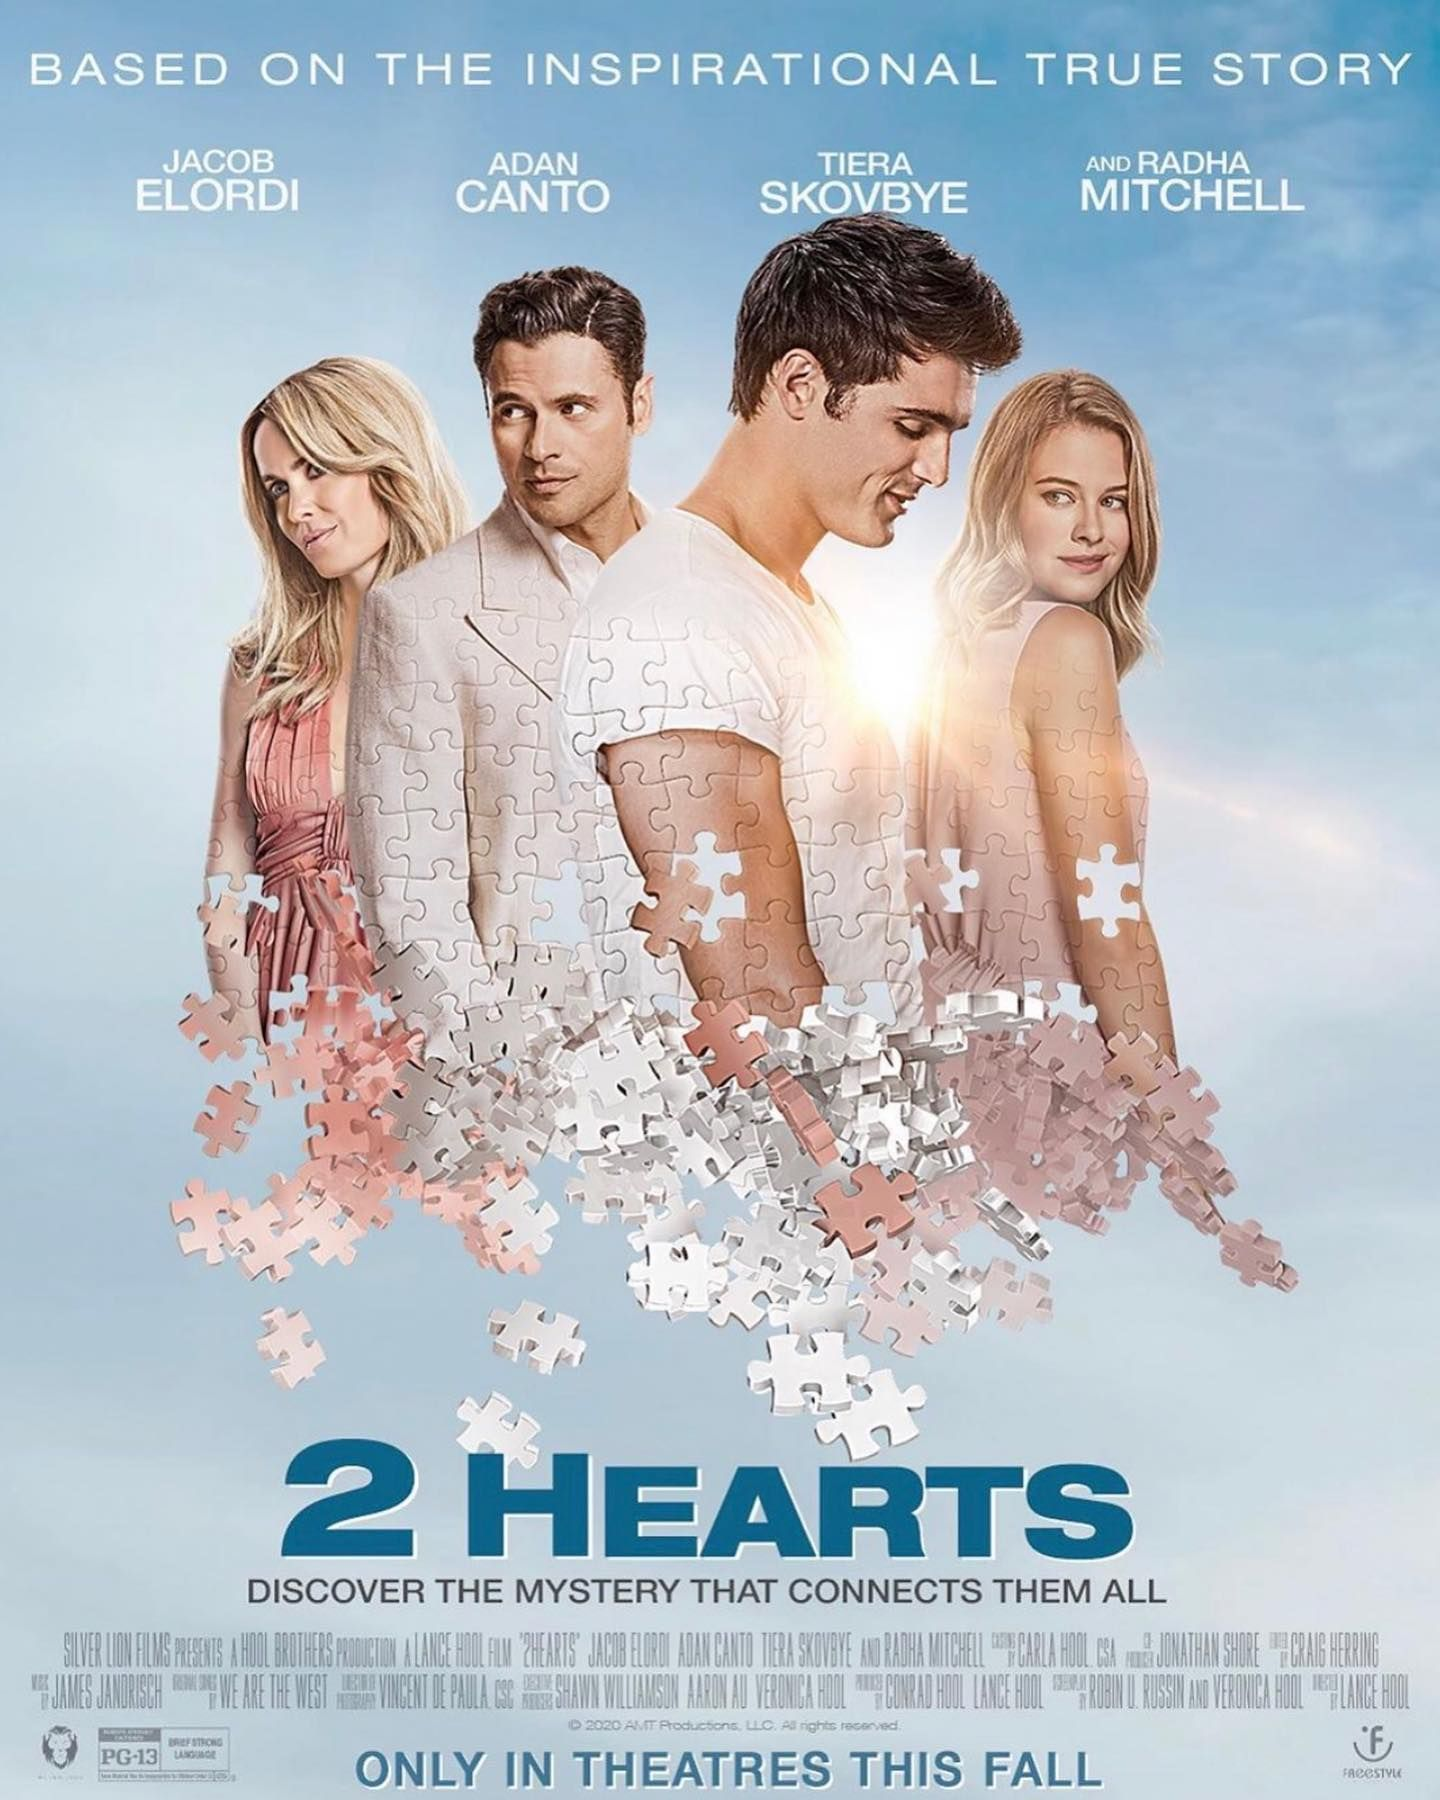 2 Hearts Movie Coming In October A Must See Long Wait For Isabella Radha Mitchell Free Movies Online Full Movies Online Free